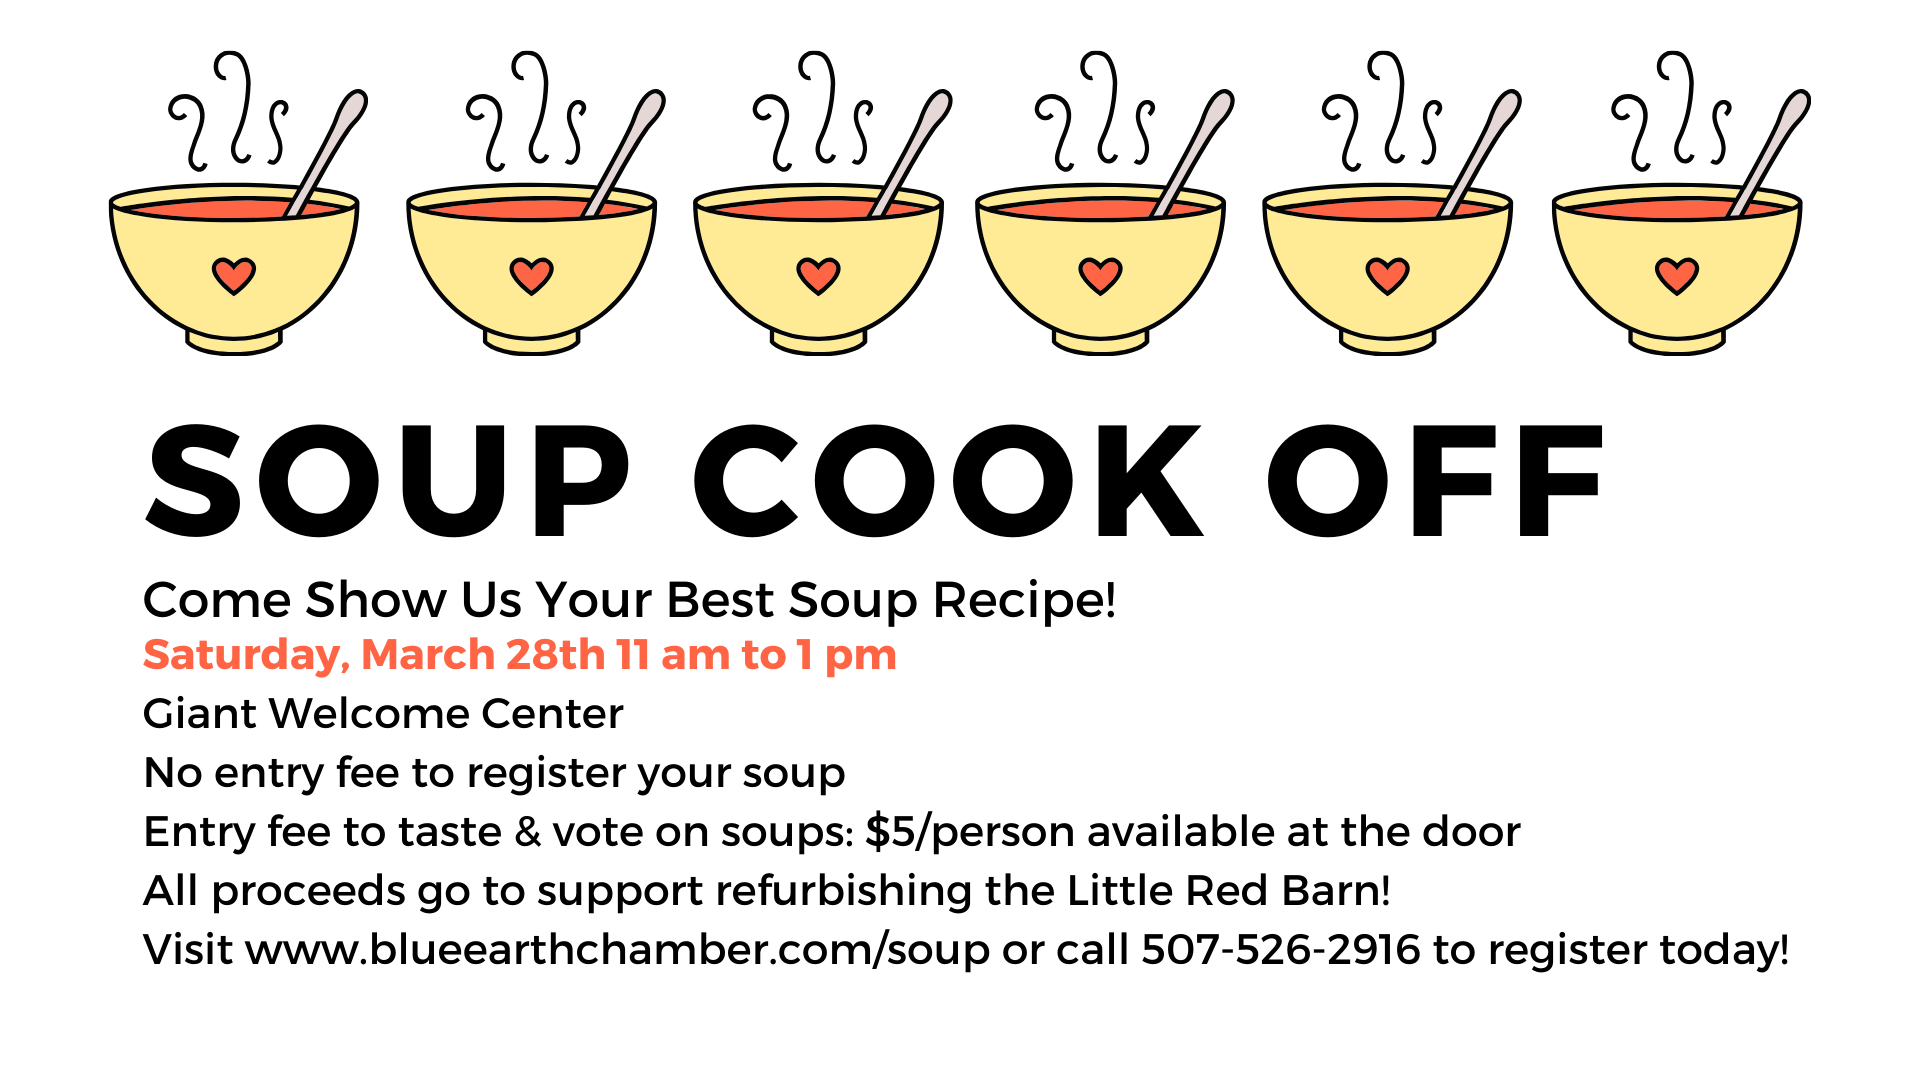 Soup cook off 2